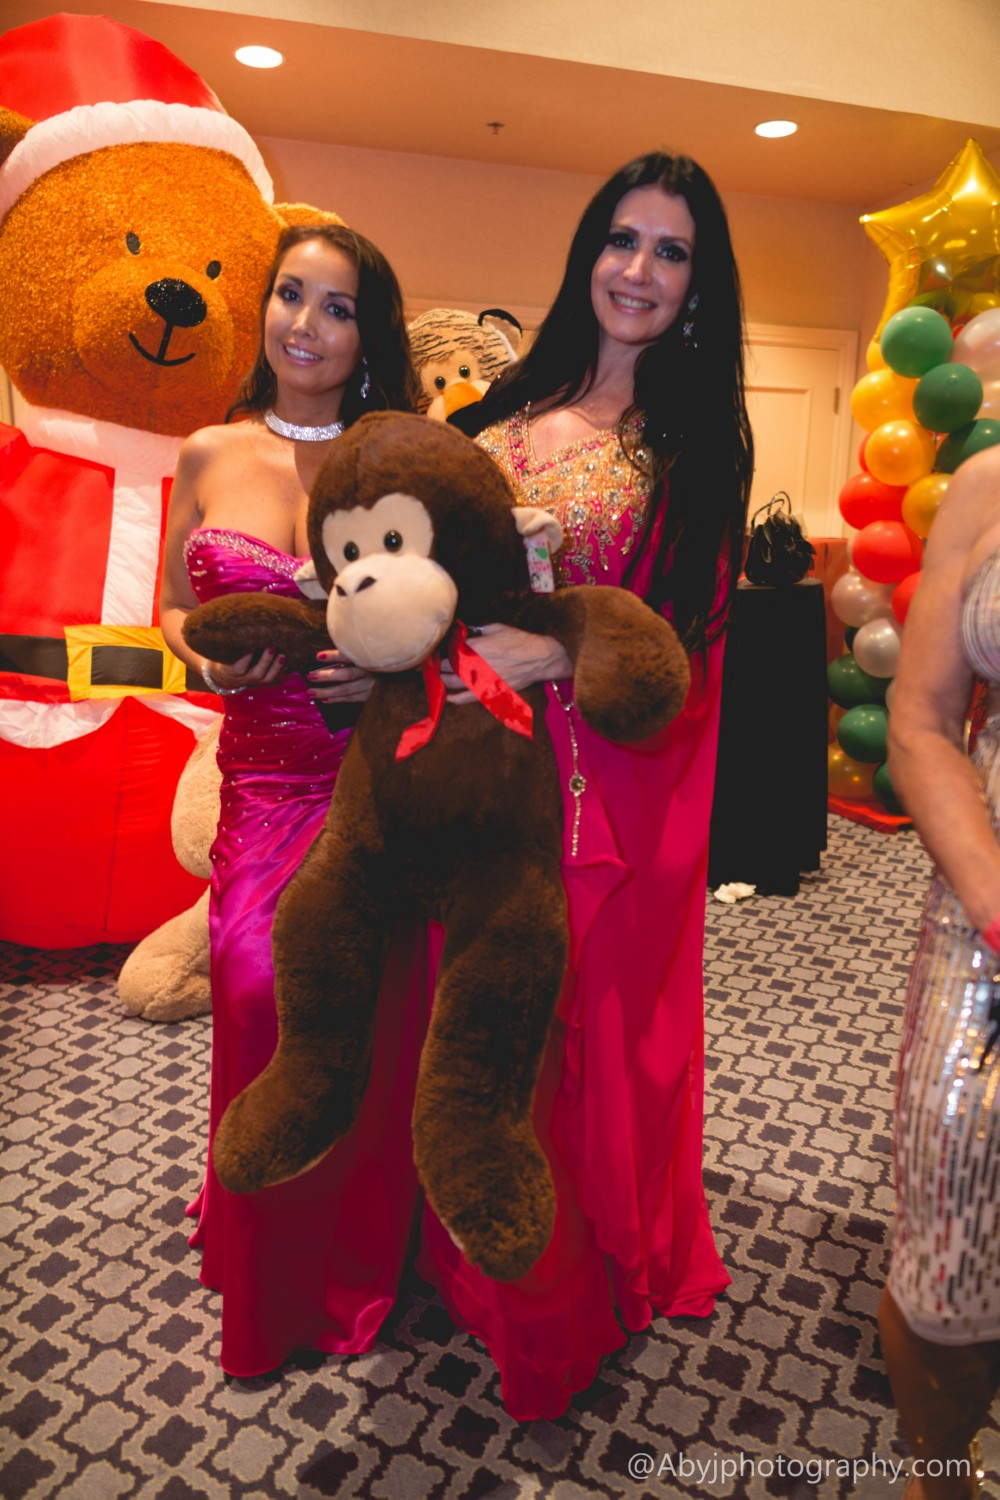 ABYJ_Photography_2016_Teddy_Ball - 338.jpg